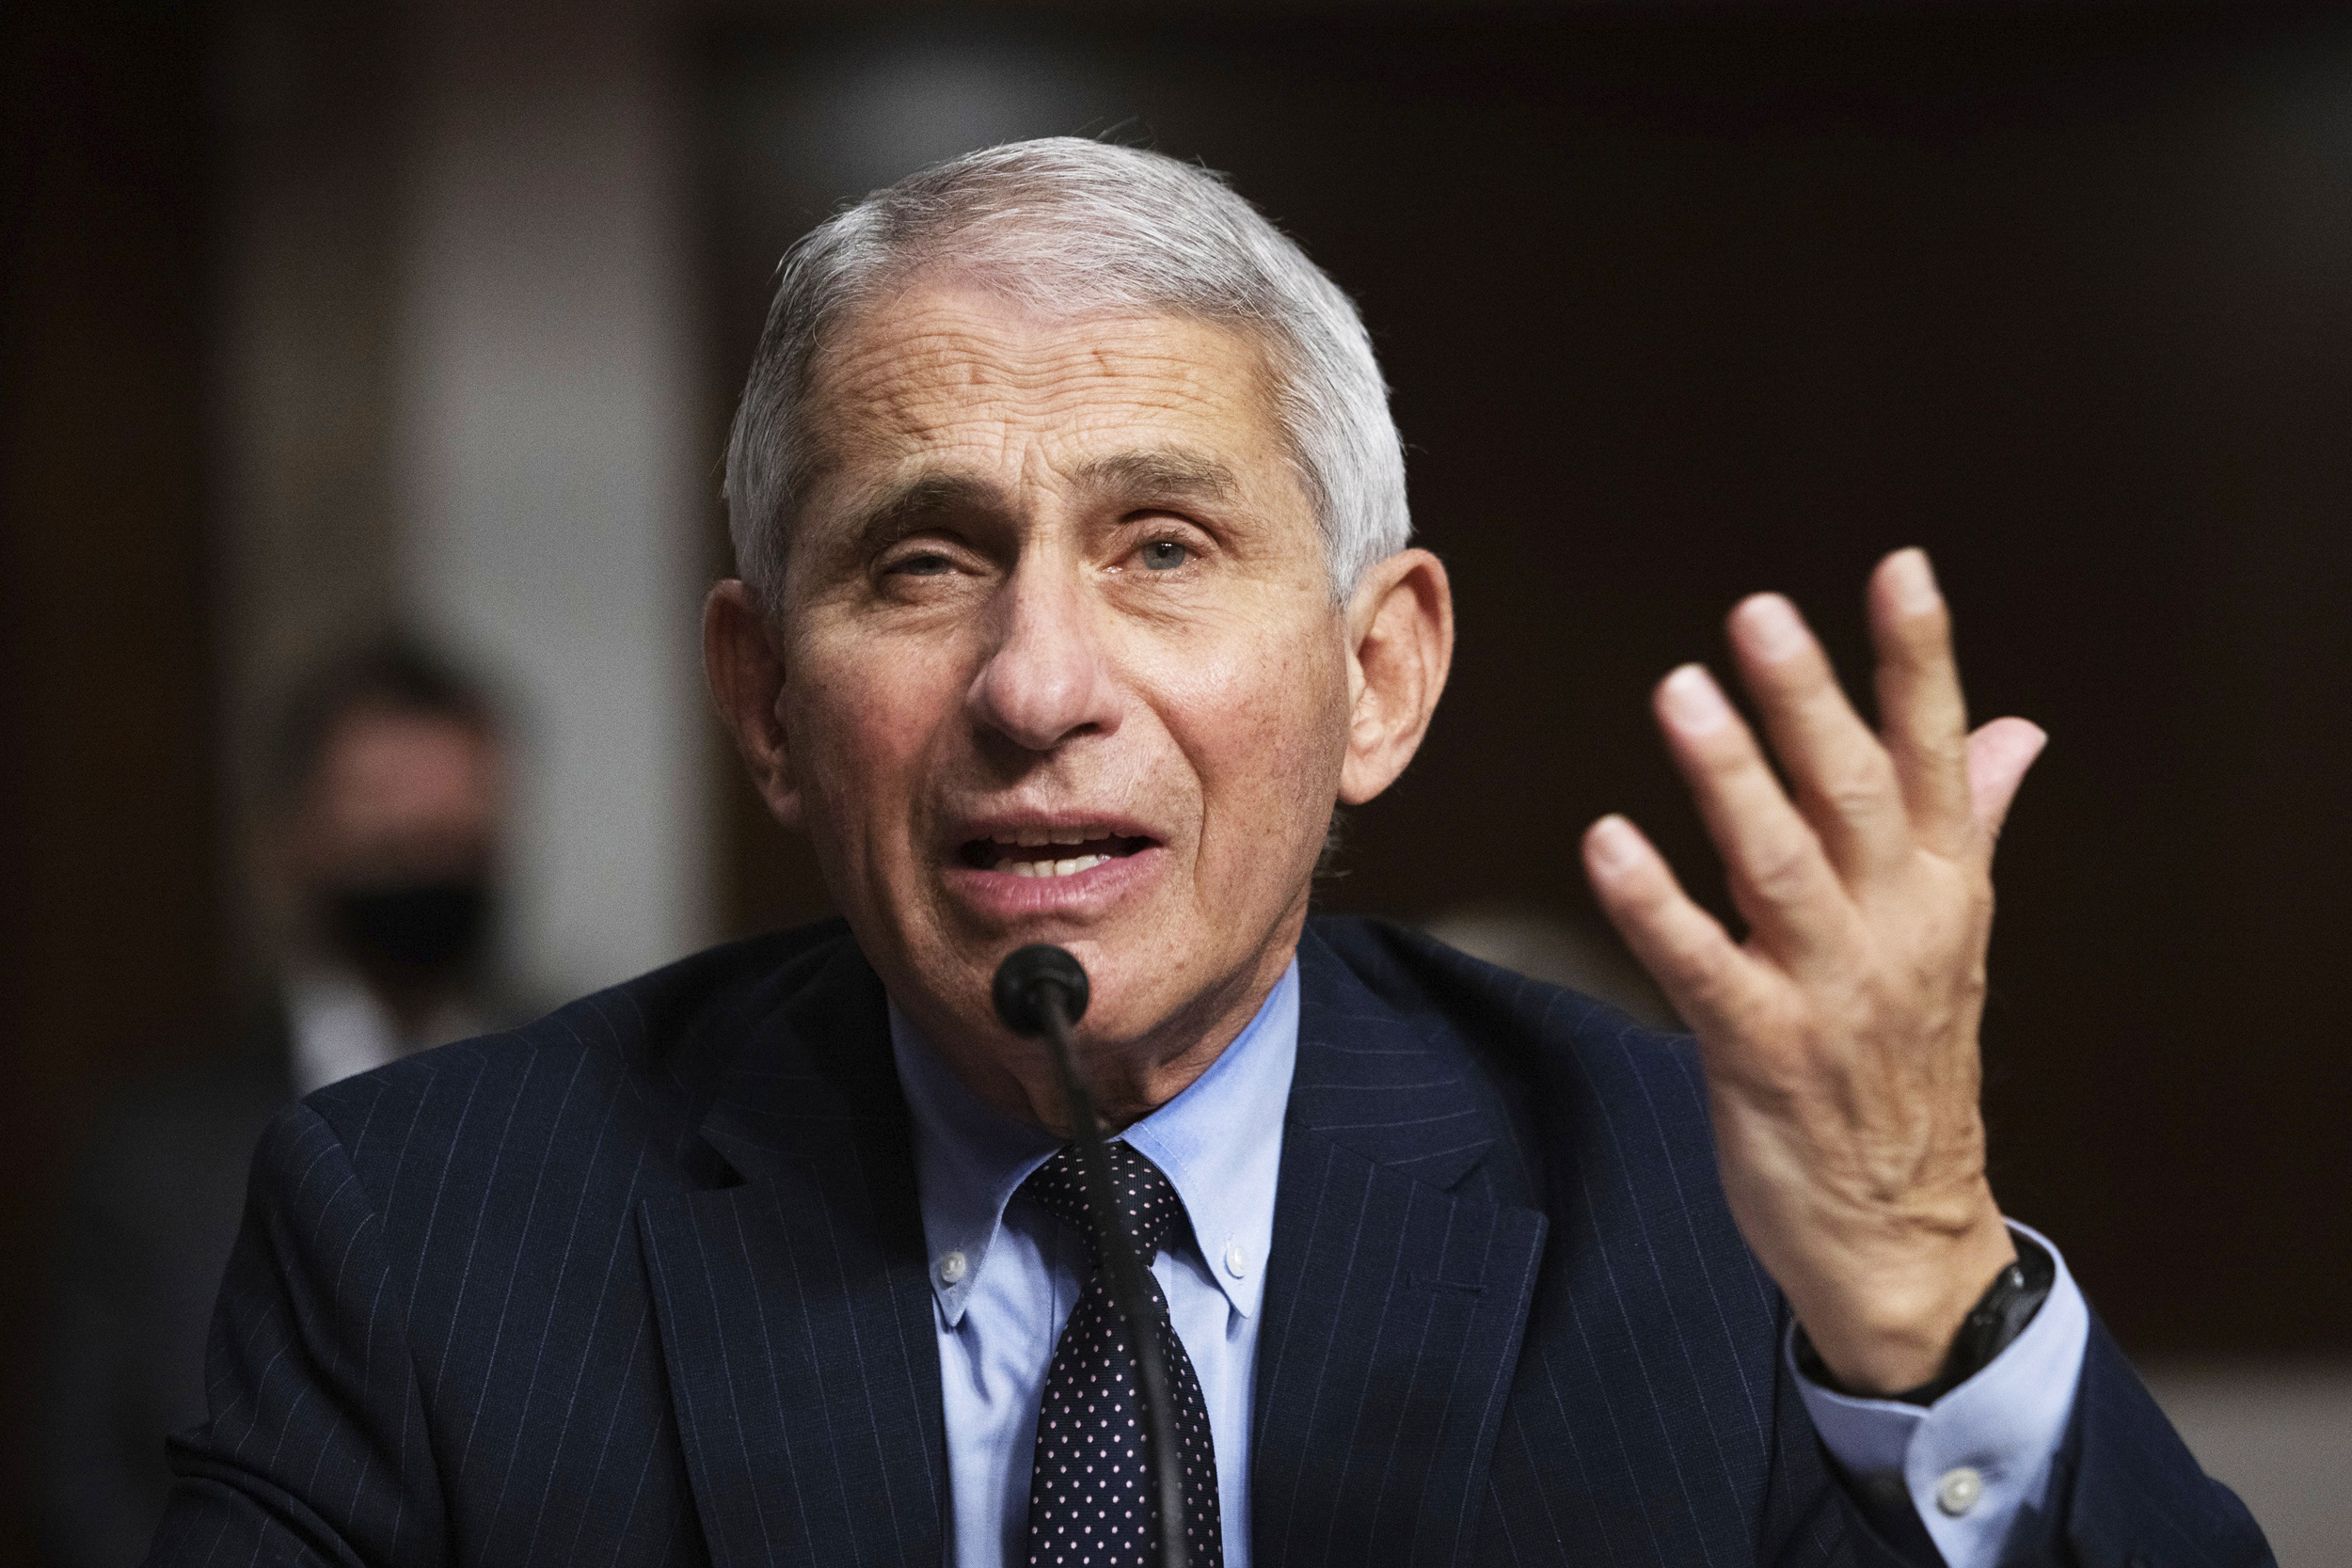 Fauci says as coronavirus infections swell, federal task force is meeting just weekly